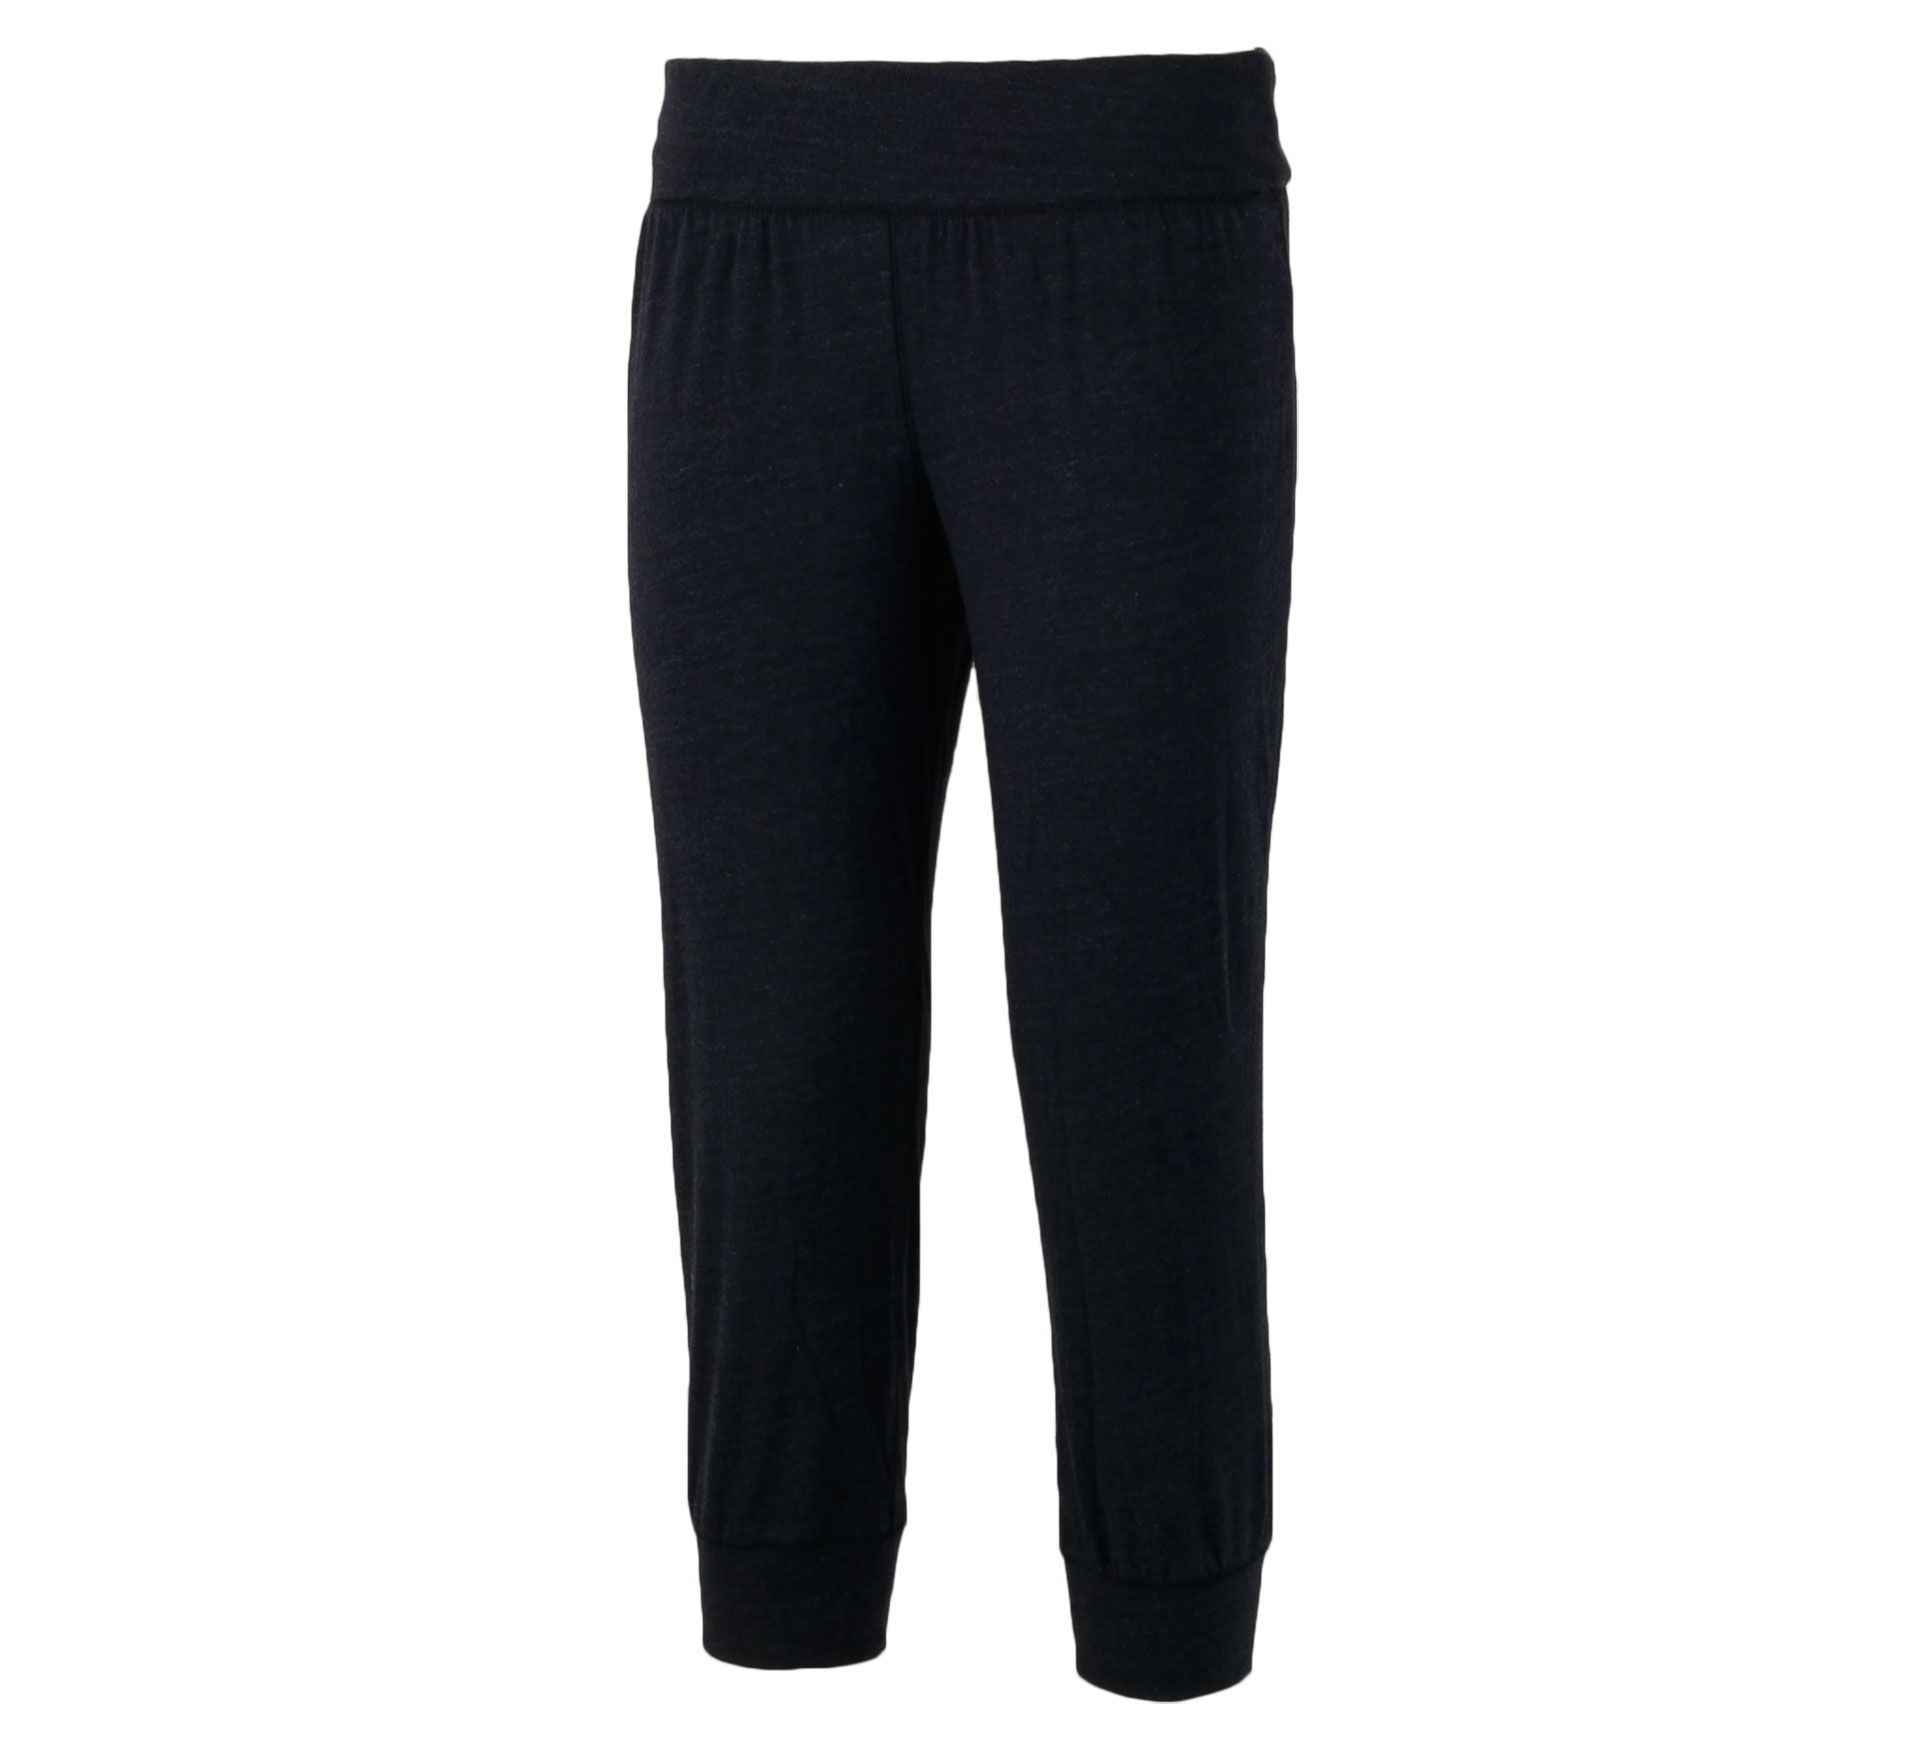 Under Armour Legacy 3/4 Joggingbroek Dames zwart